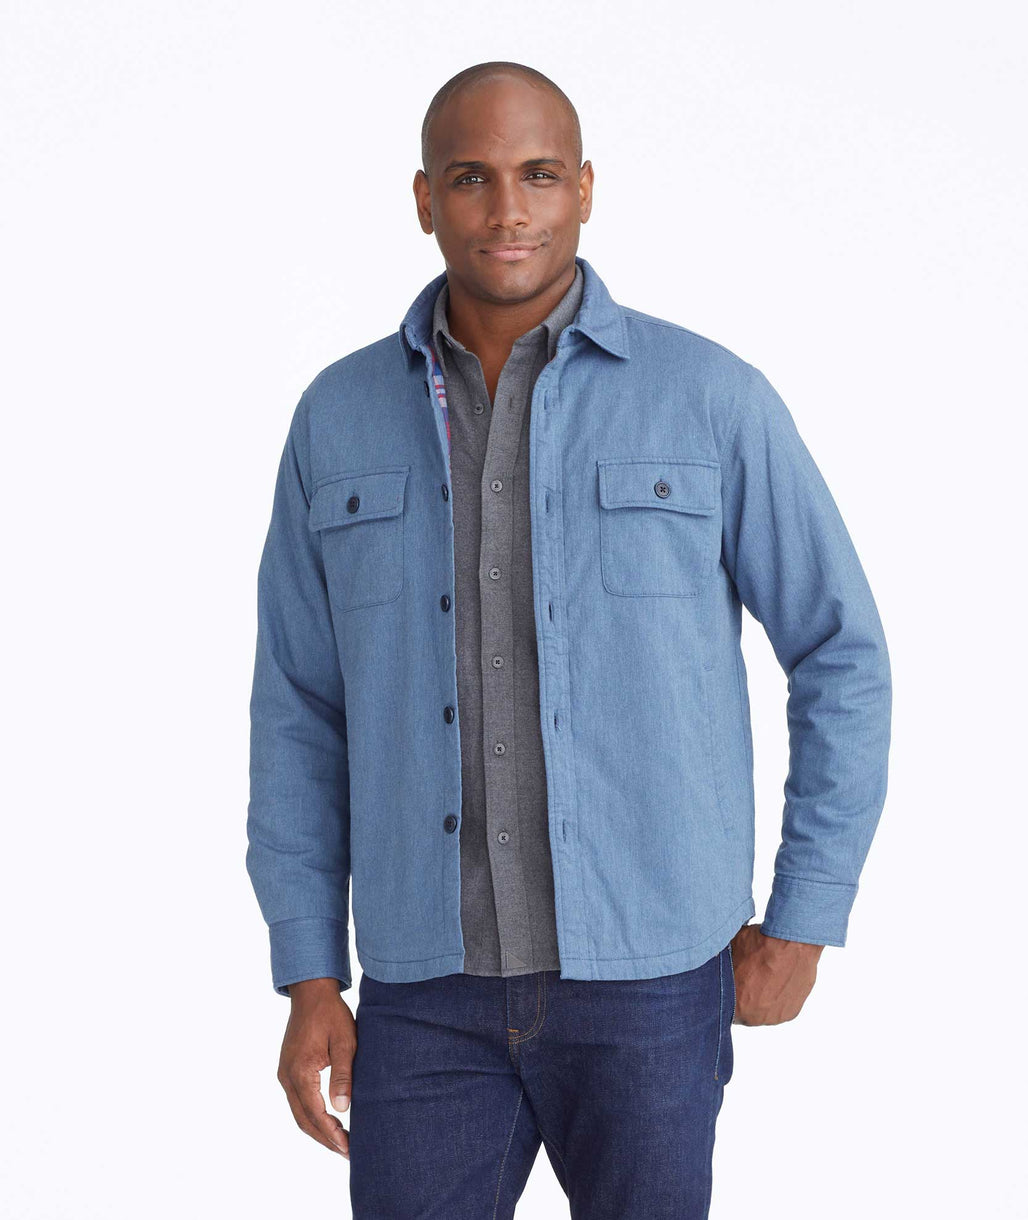 Model wearing a Blue Shirt Jacket